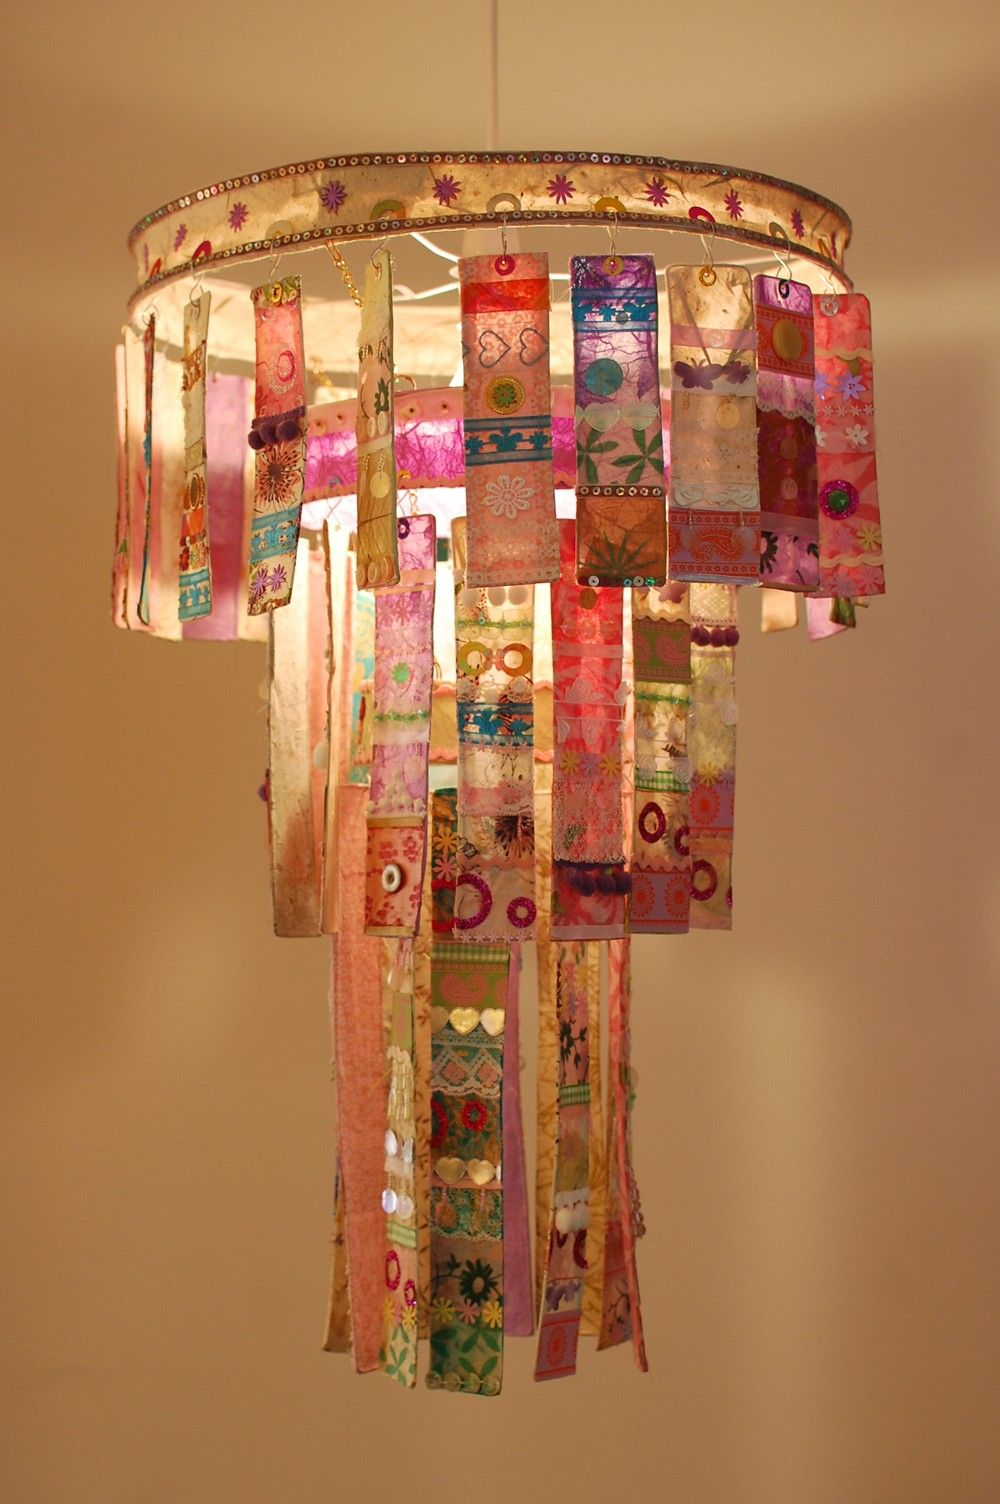 A Client Recently Asked Me To Find Creative Ceiling Fixture For Her Daughters Room Loved This Idea